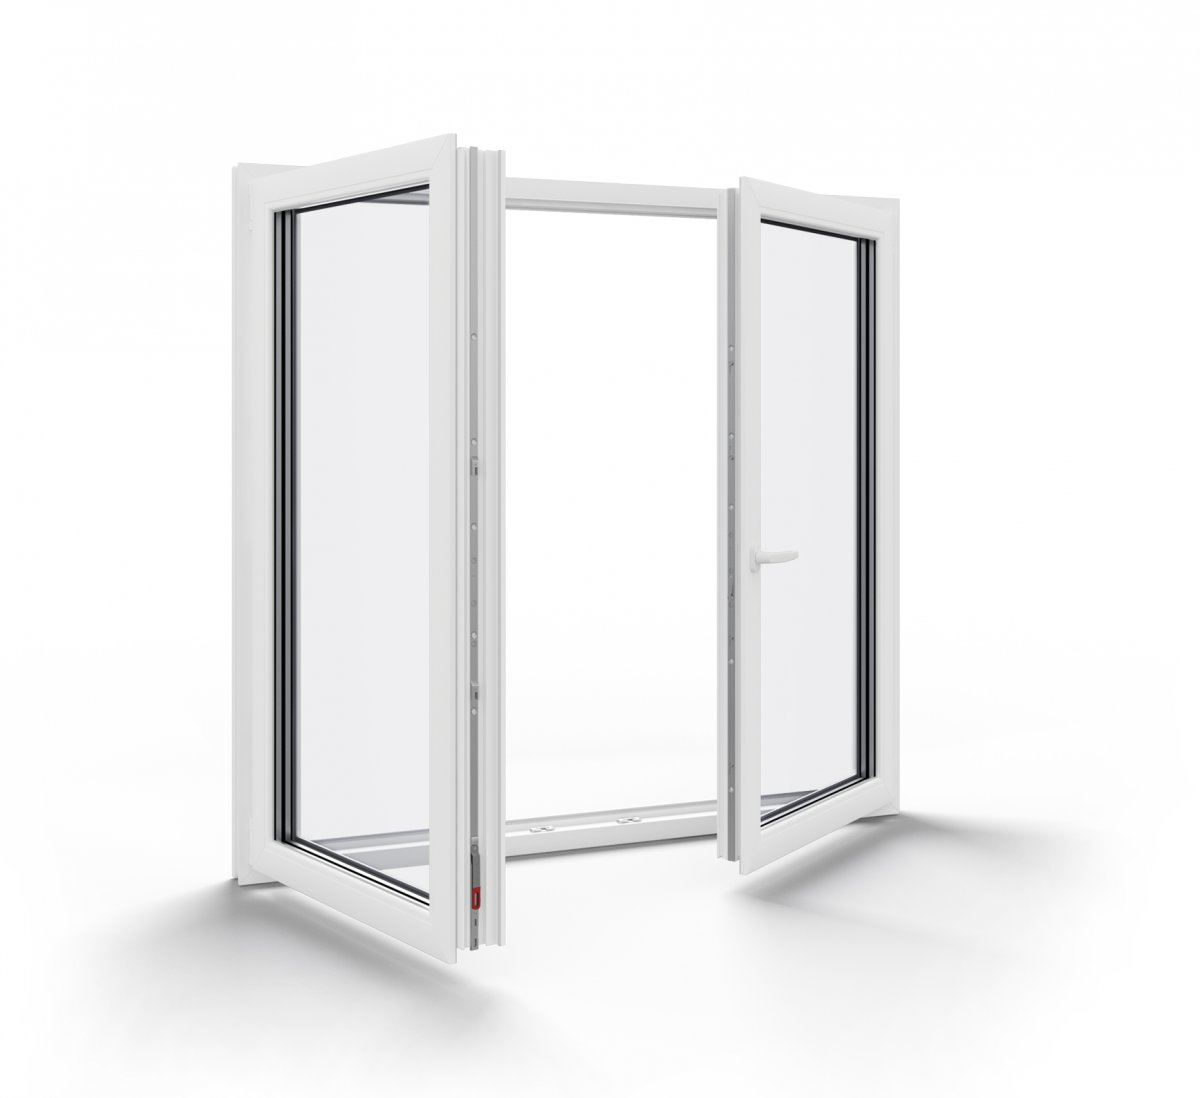 Windows for house or cottage - Photo 2